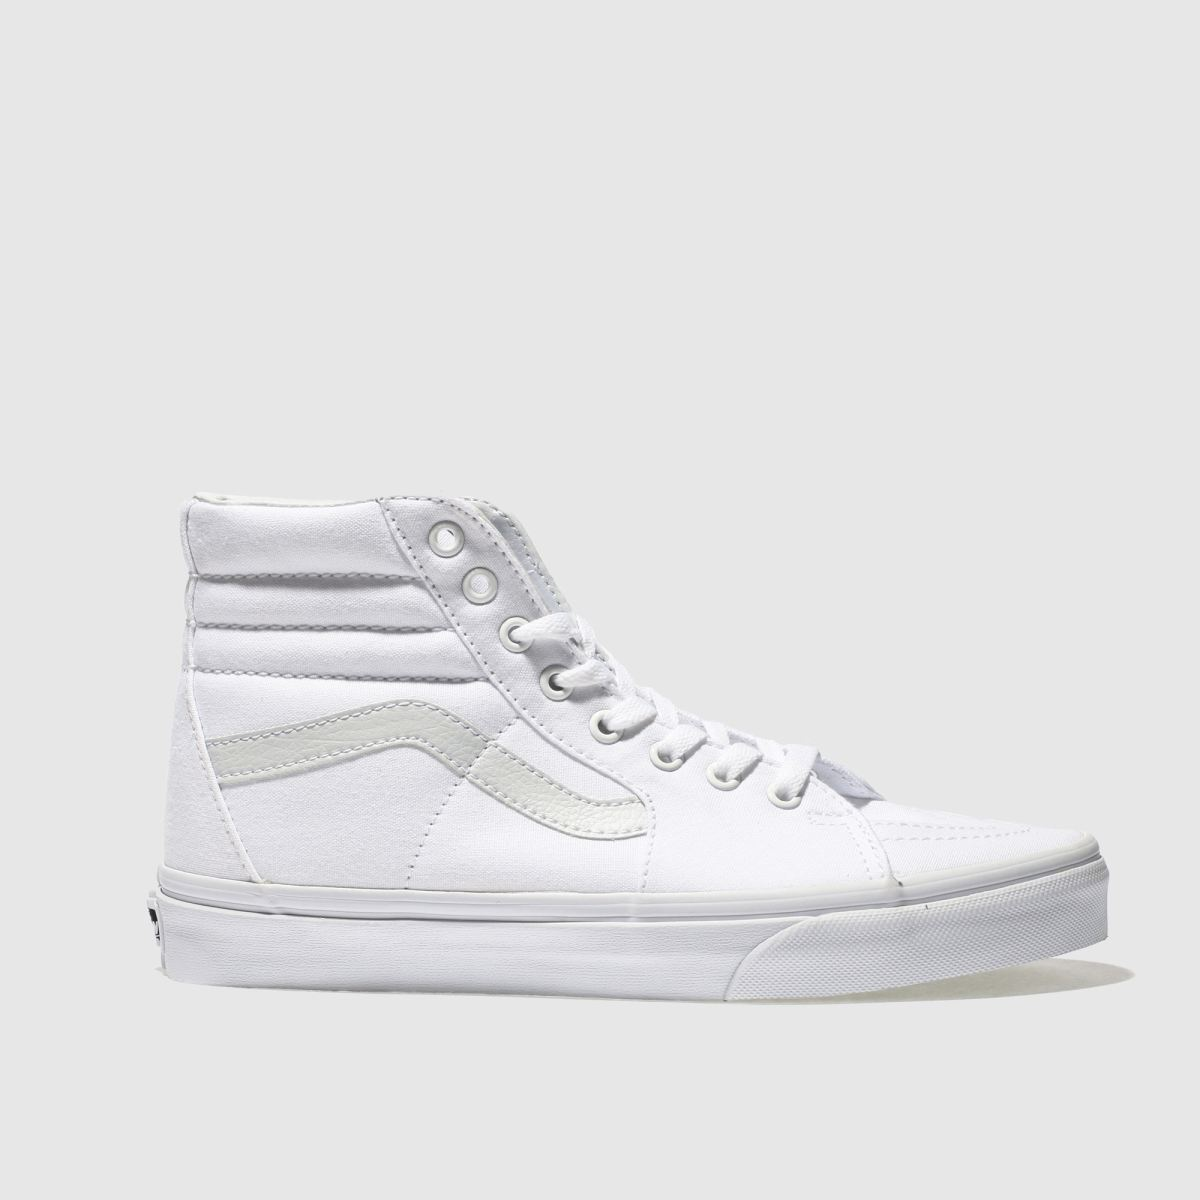 ab495980978a Vans White Sk8-hi Trainers - Female First Shopping